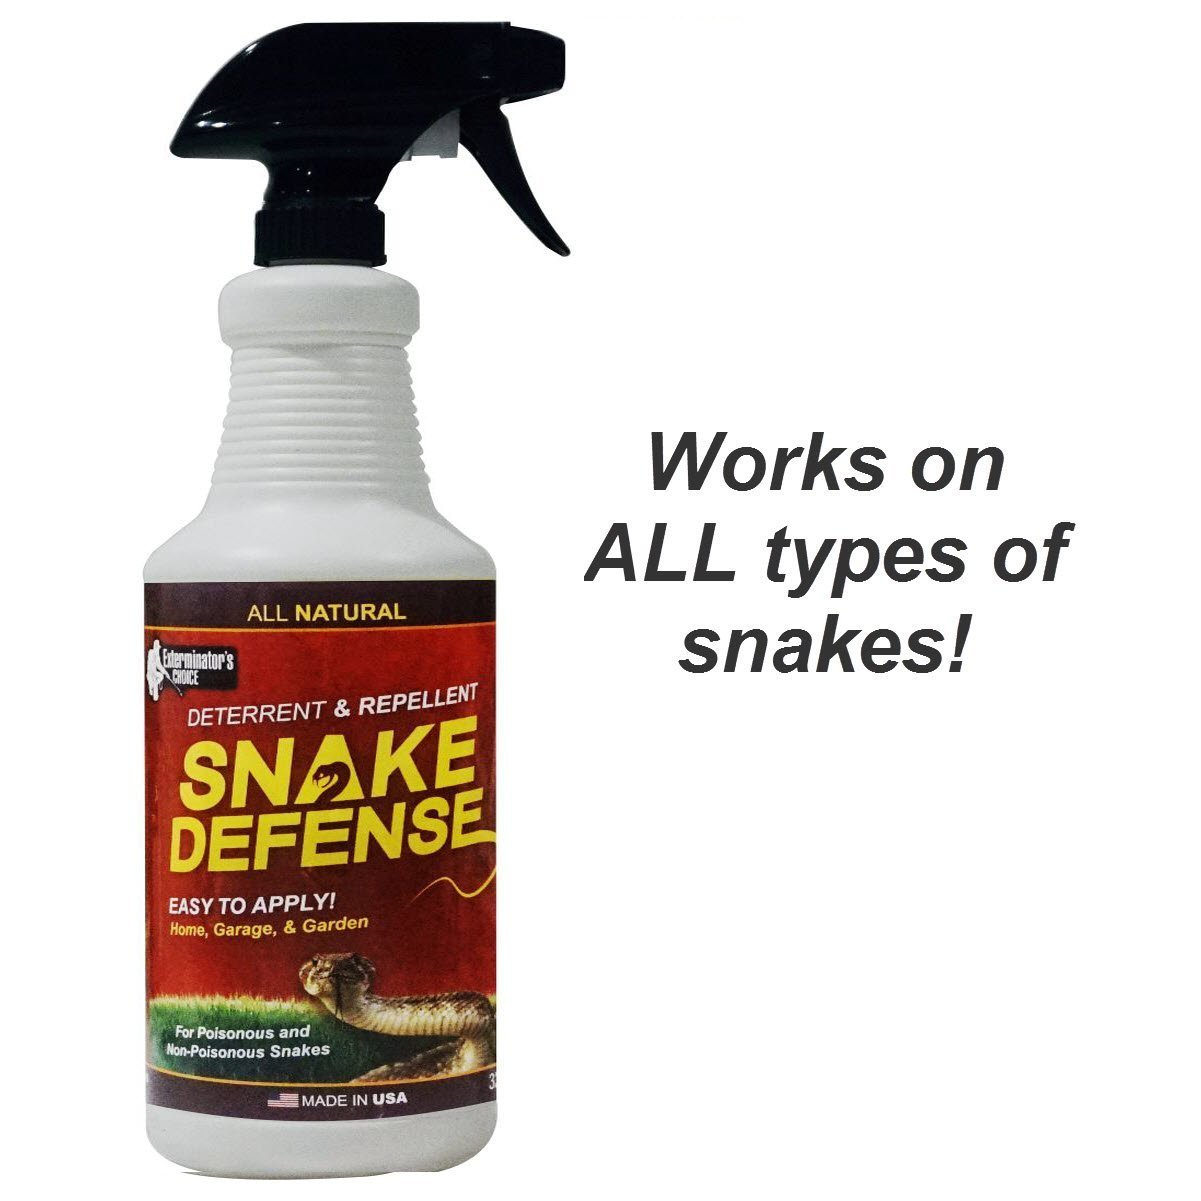 Exterminators Choice Snake Repellent